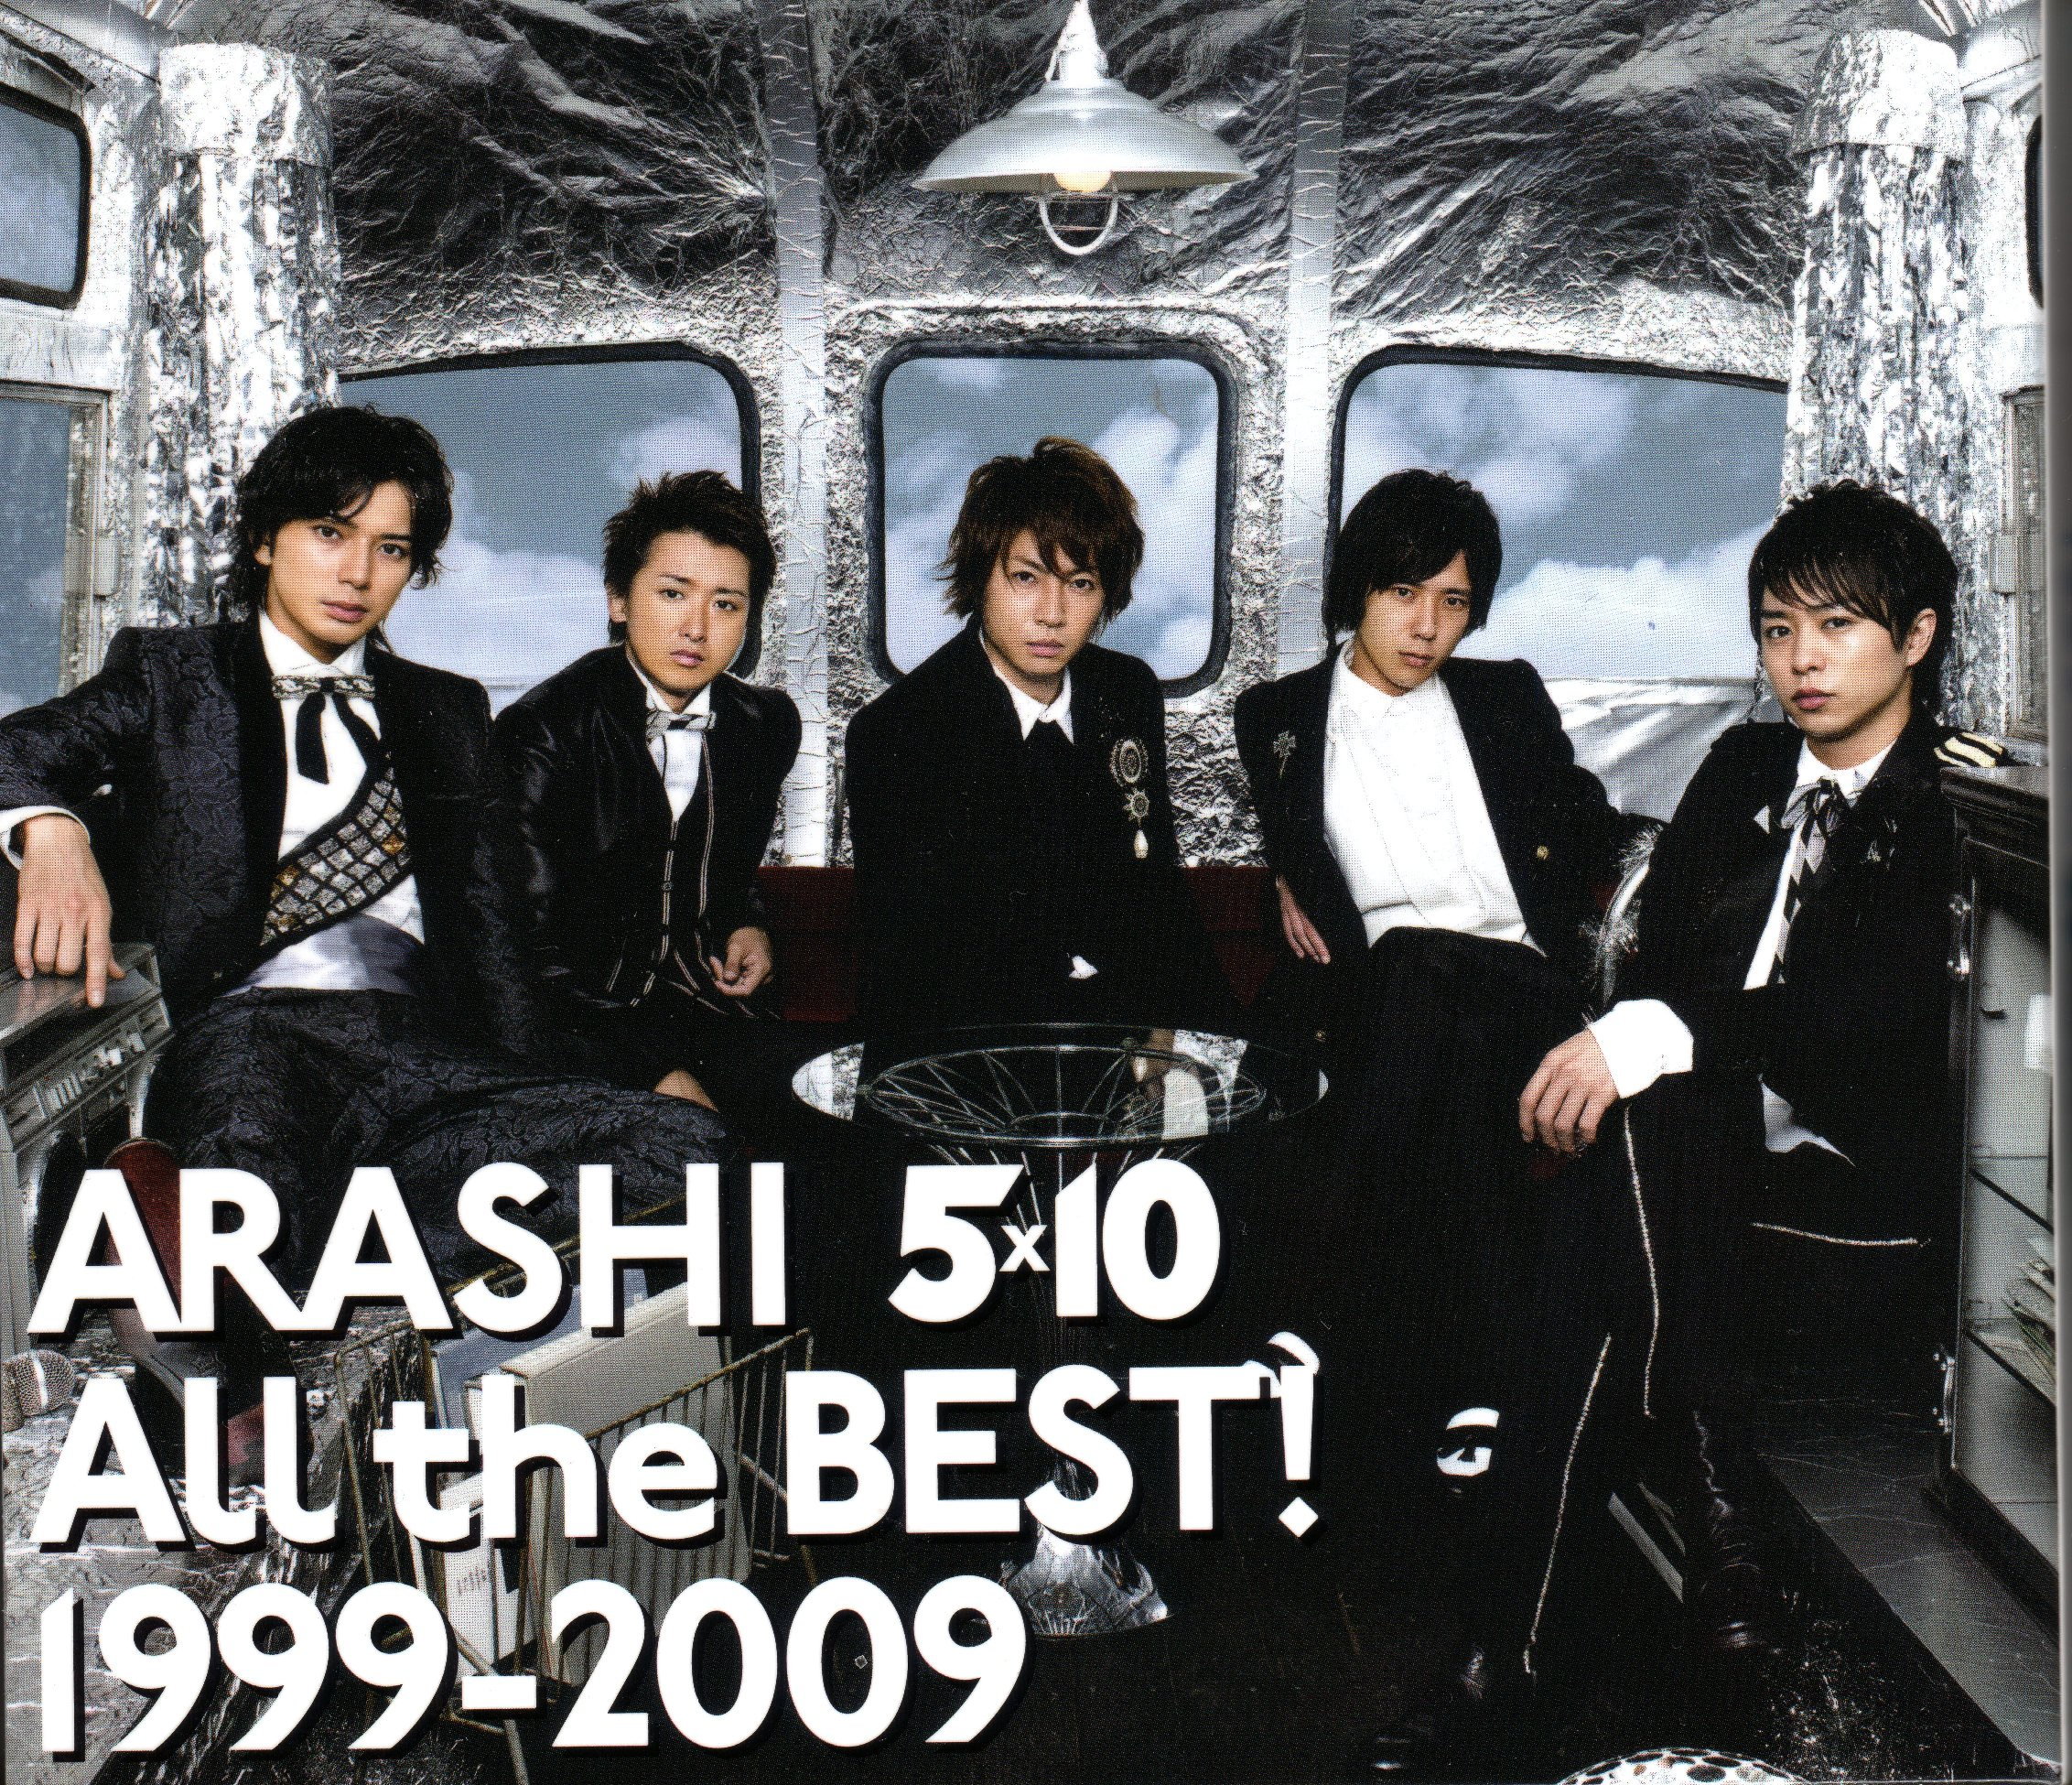 Arashi all the best 1999 2009 music pixels for All the very best images